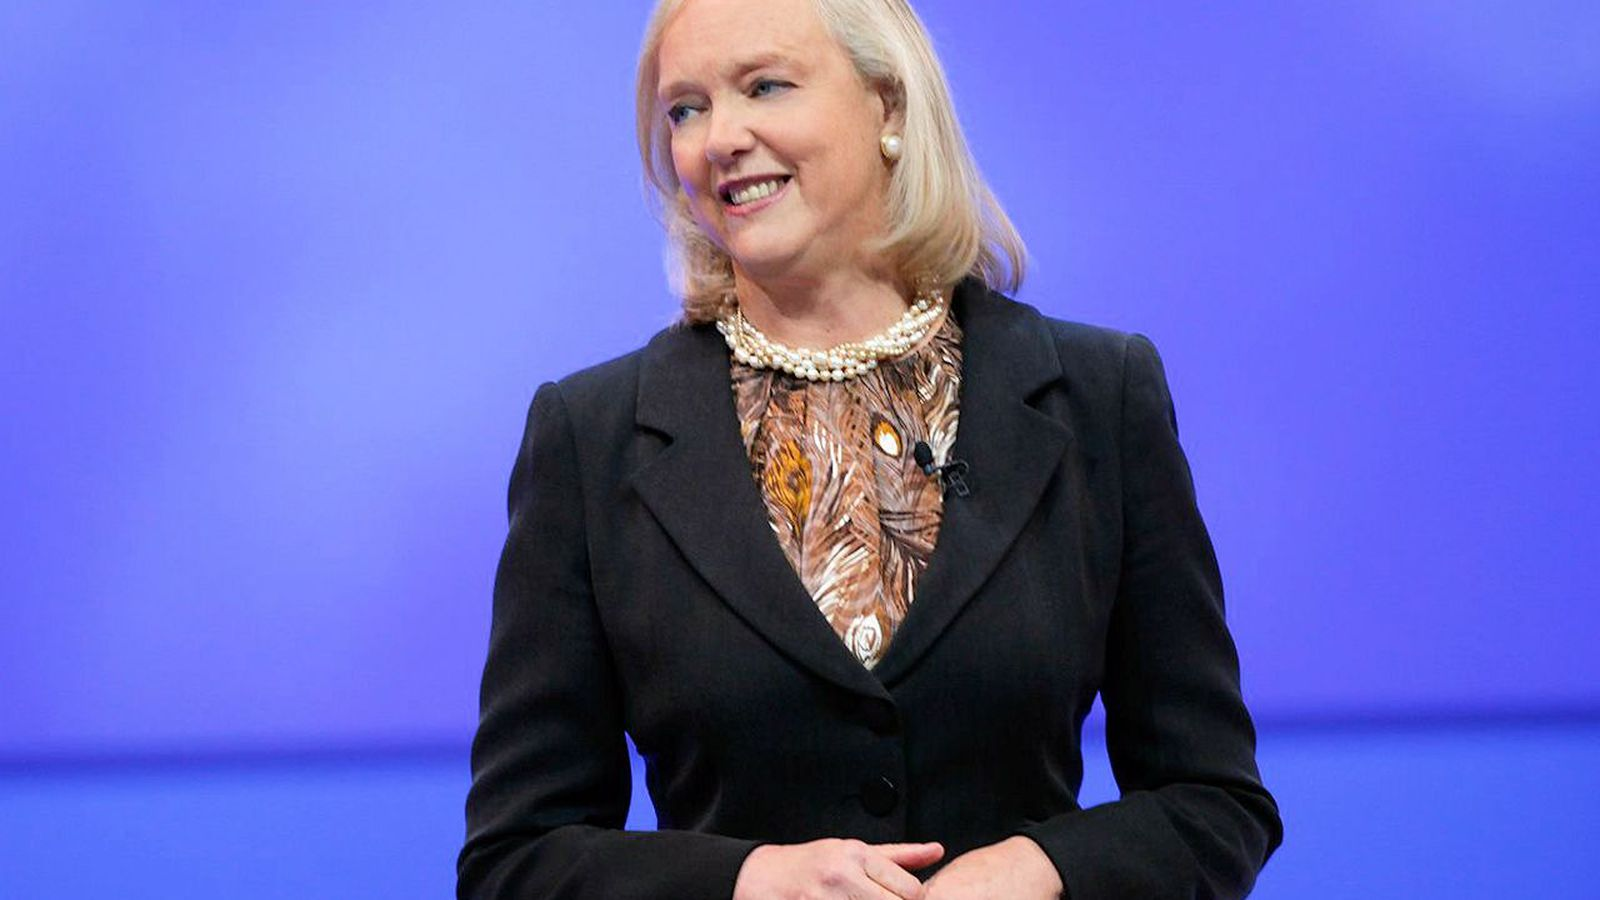 meg whitman leadership style Meg whitman and ebay – leadership case study jan 8 she was popularly known as meg whitman and 'darling of the ebay, meg whitman, leadership case study.